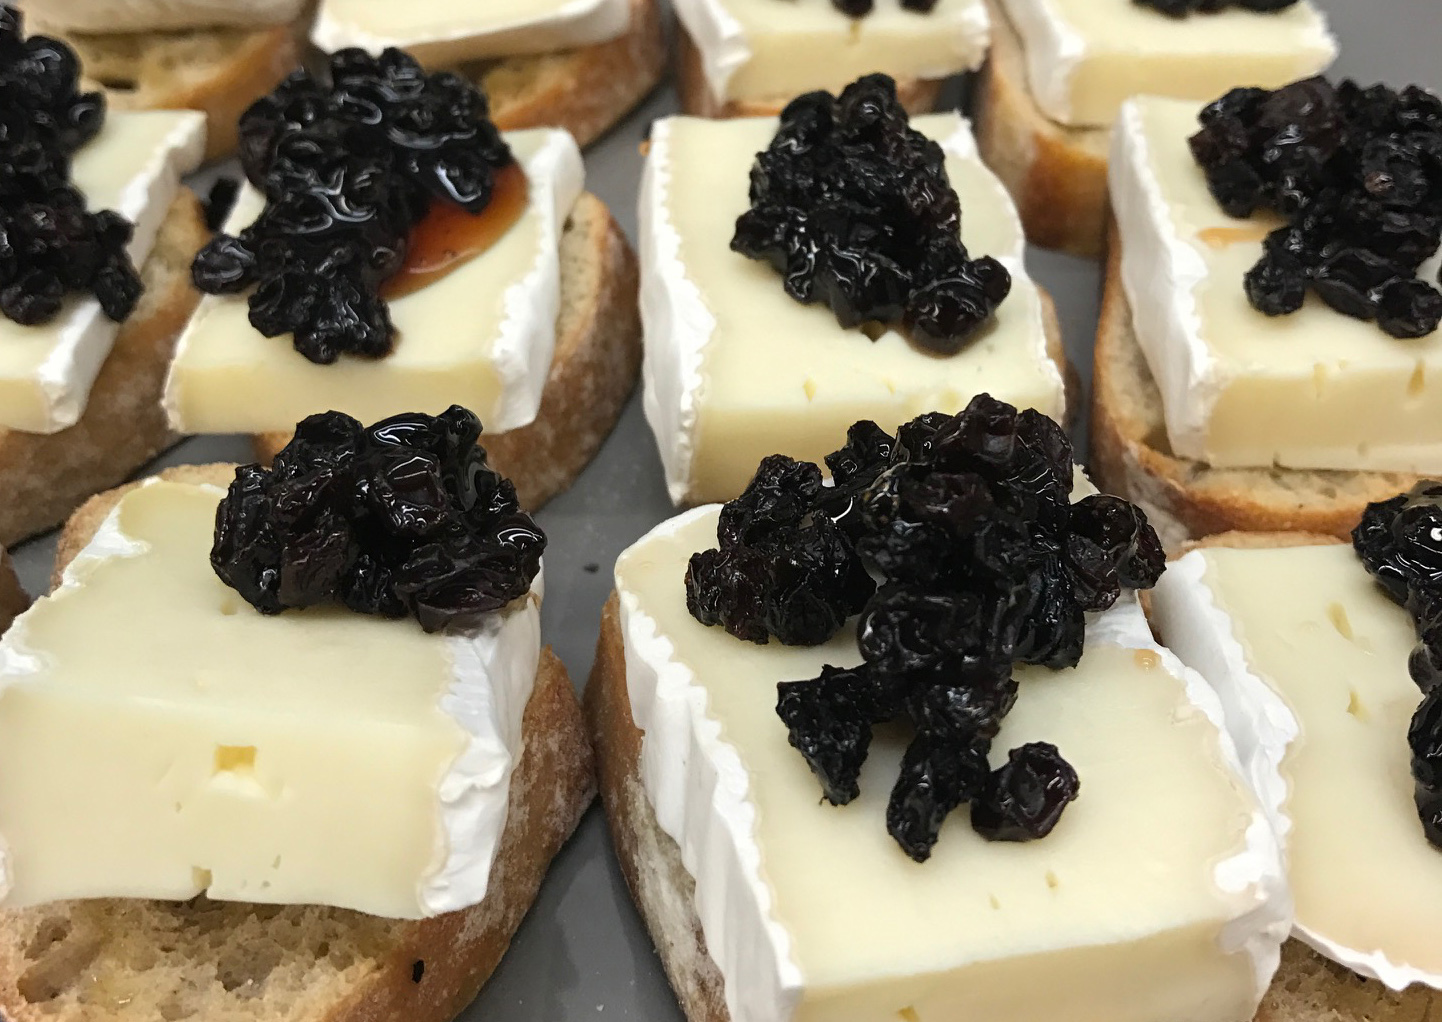 Blackcurrants and Brie on Crostinis